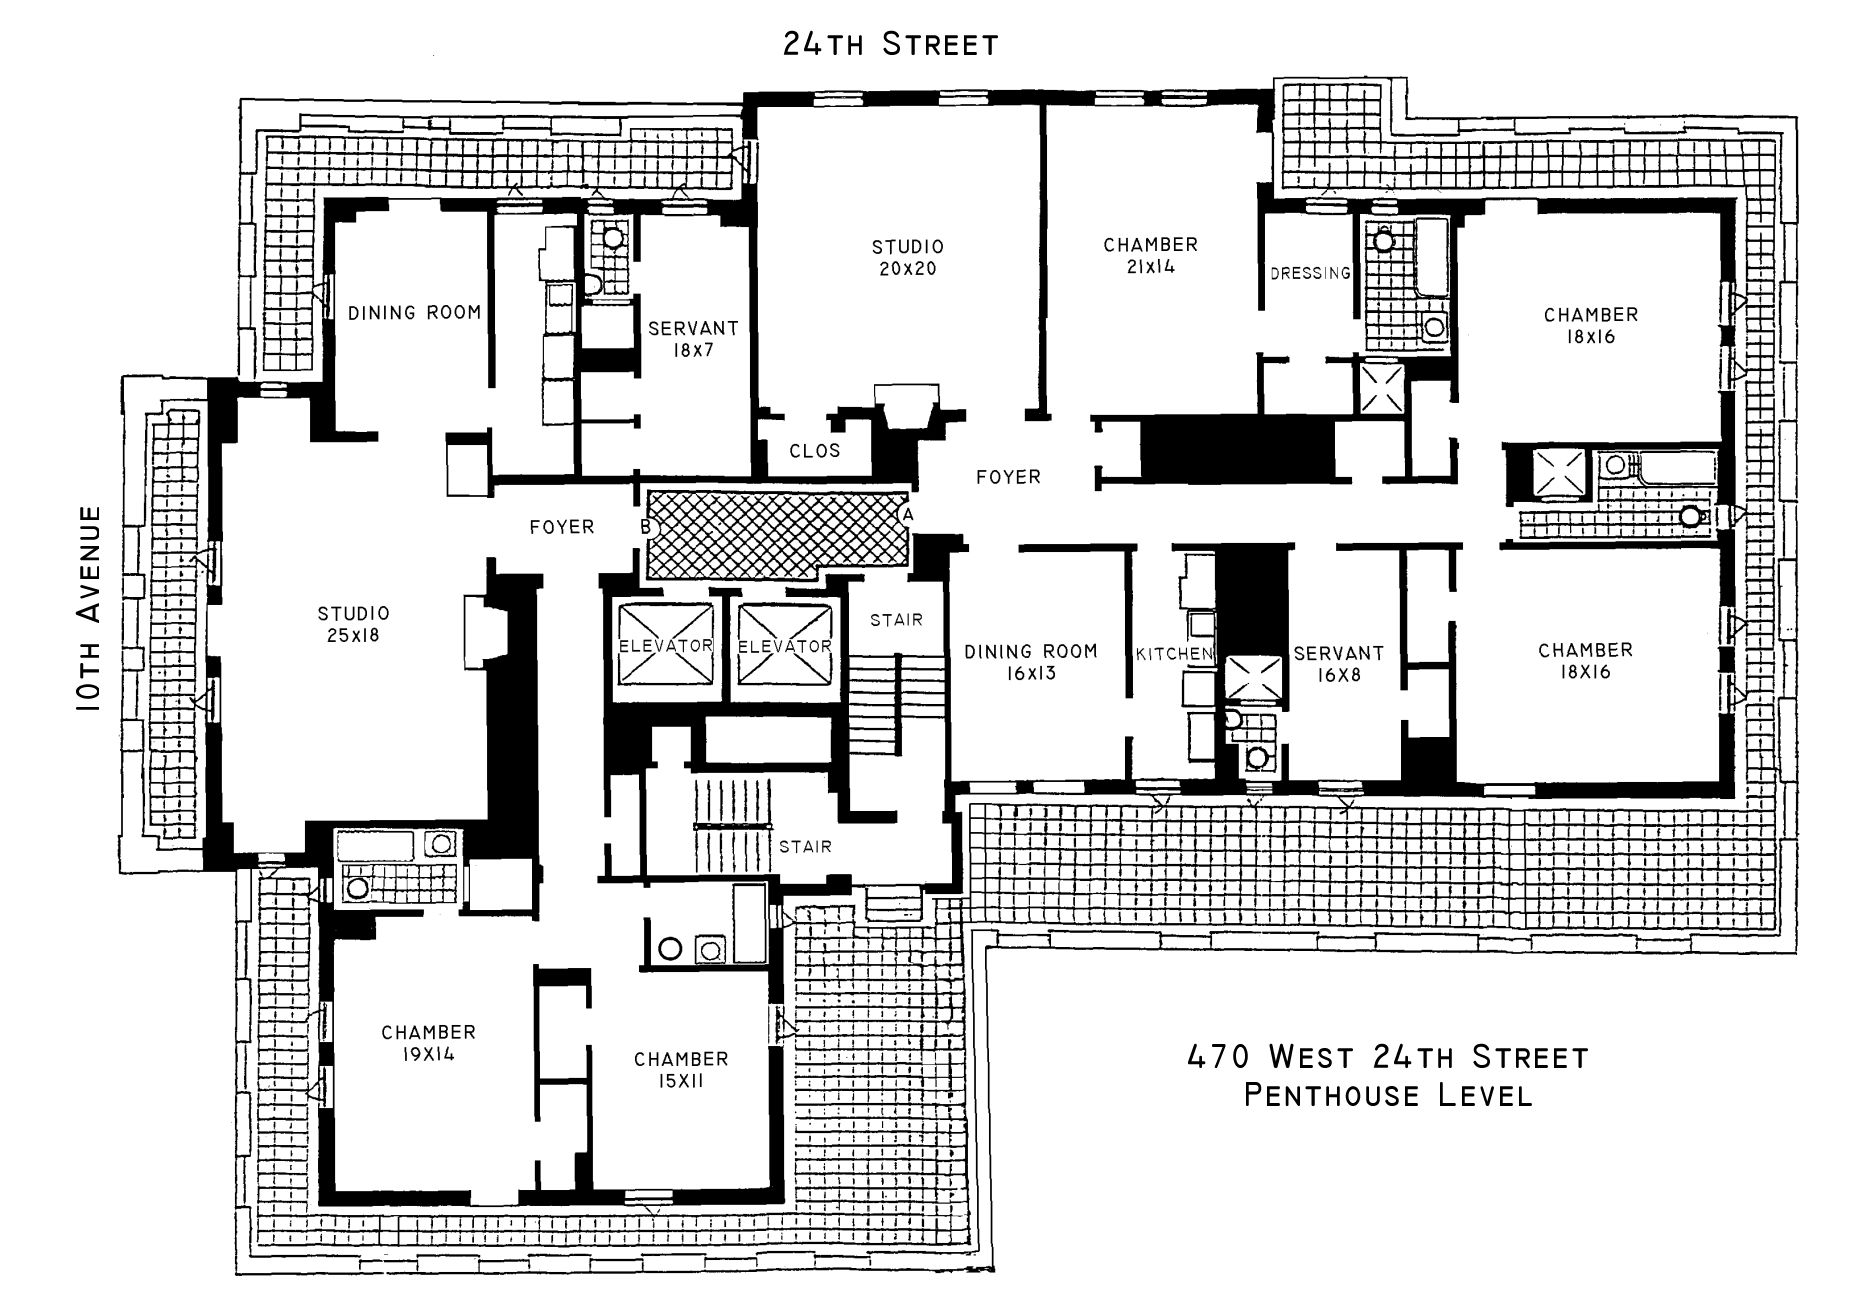 London terrace towers floorplans new york usa for Apartment floor plans nyc